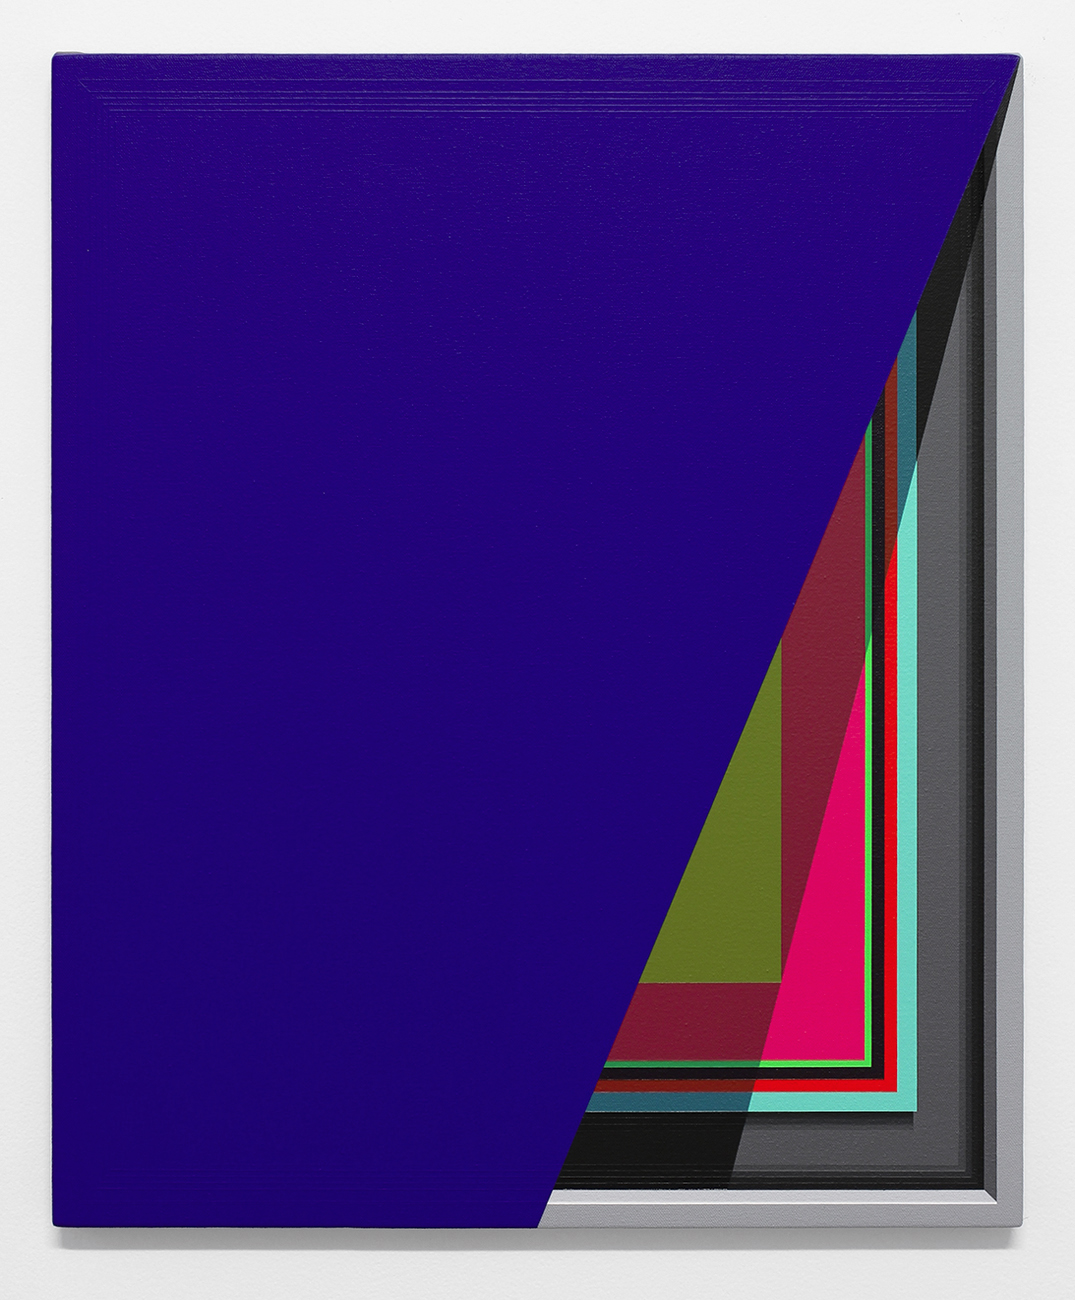 Severed Hue (Ultramarine)   2013  Acrylic on canvas  22 x 18 inches  (55.88 x 45.72 cm)